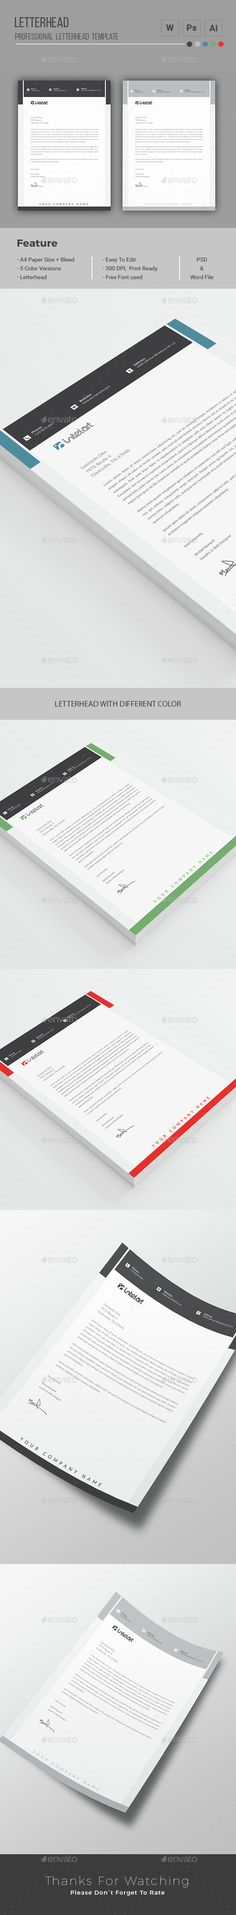 Corporate Letterhead - Business Cards Print Templates Letterhead - free business letterhead templates download